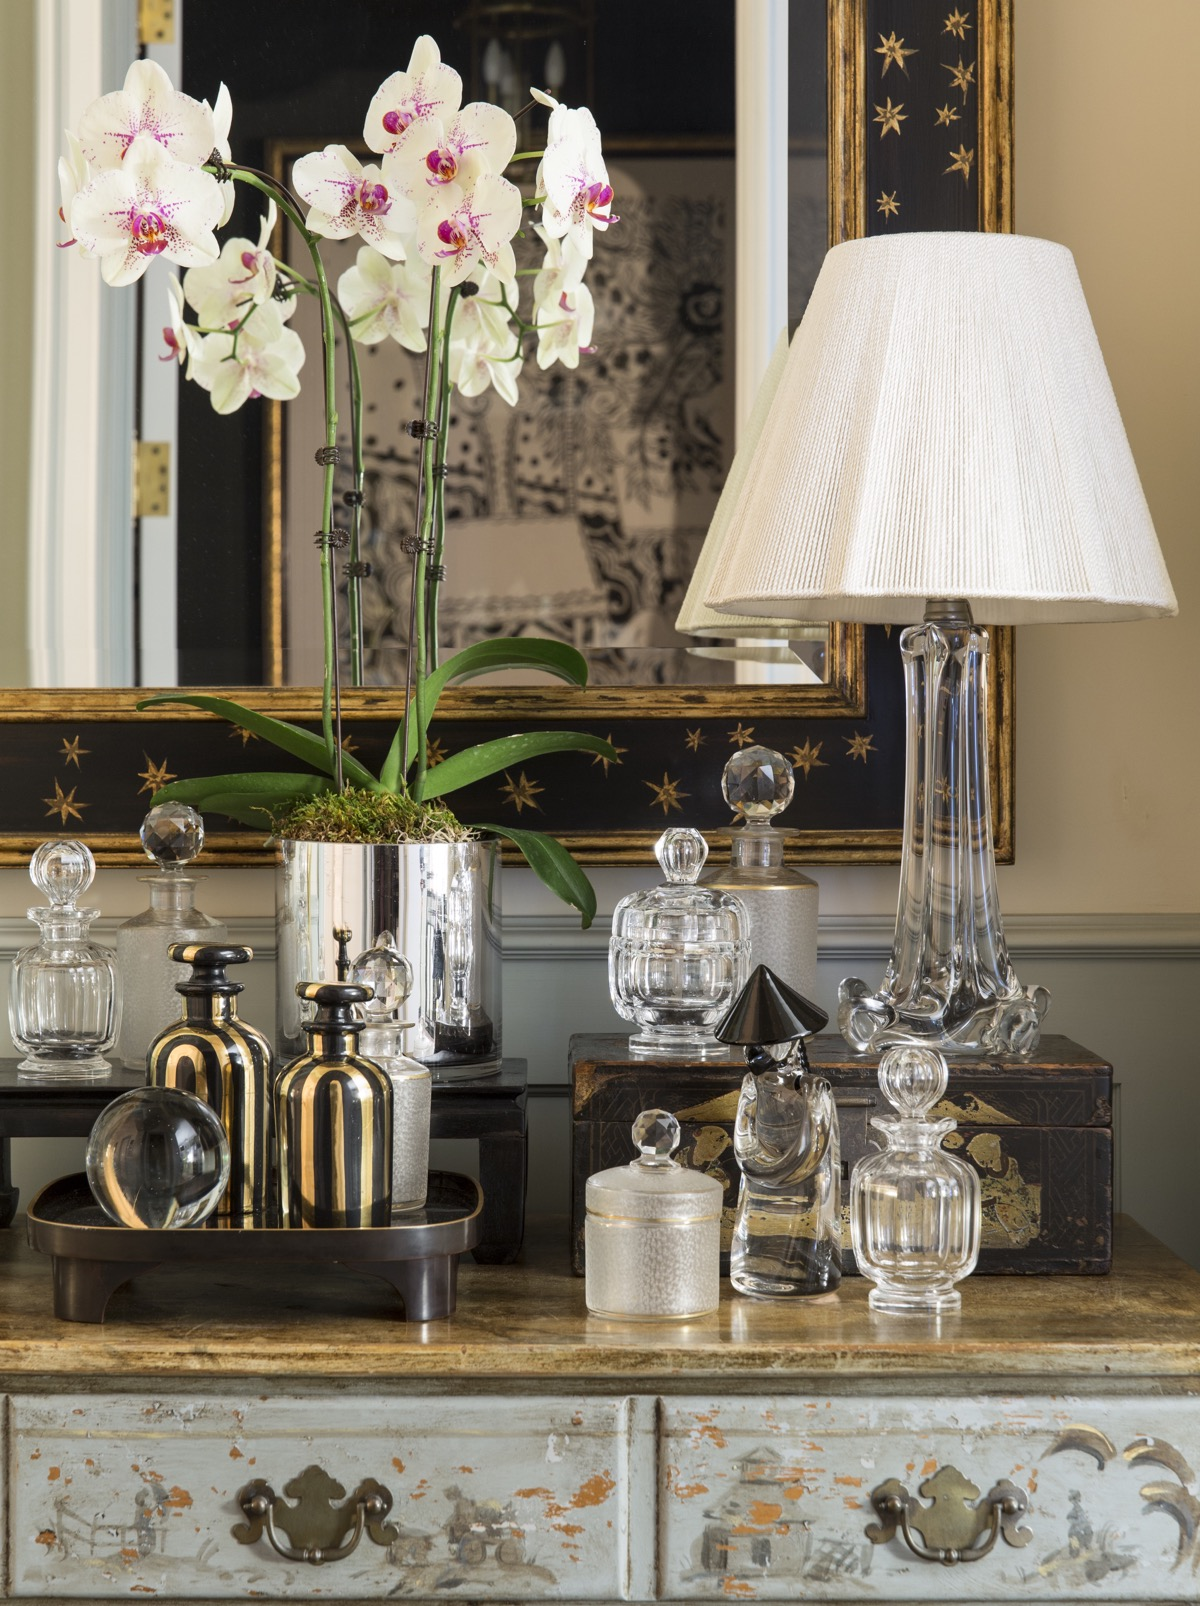 Antique perfume bottles sitting on top dresser with lamp in front of mirrow